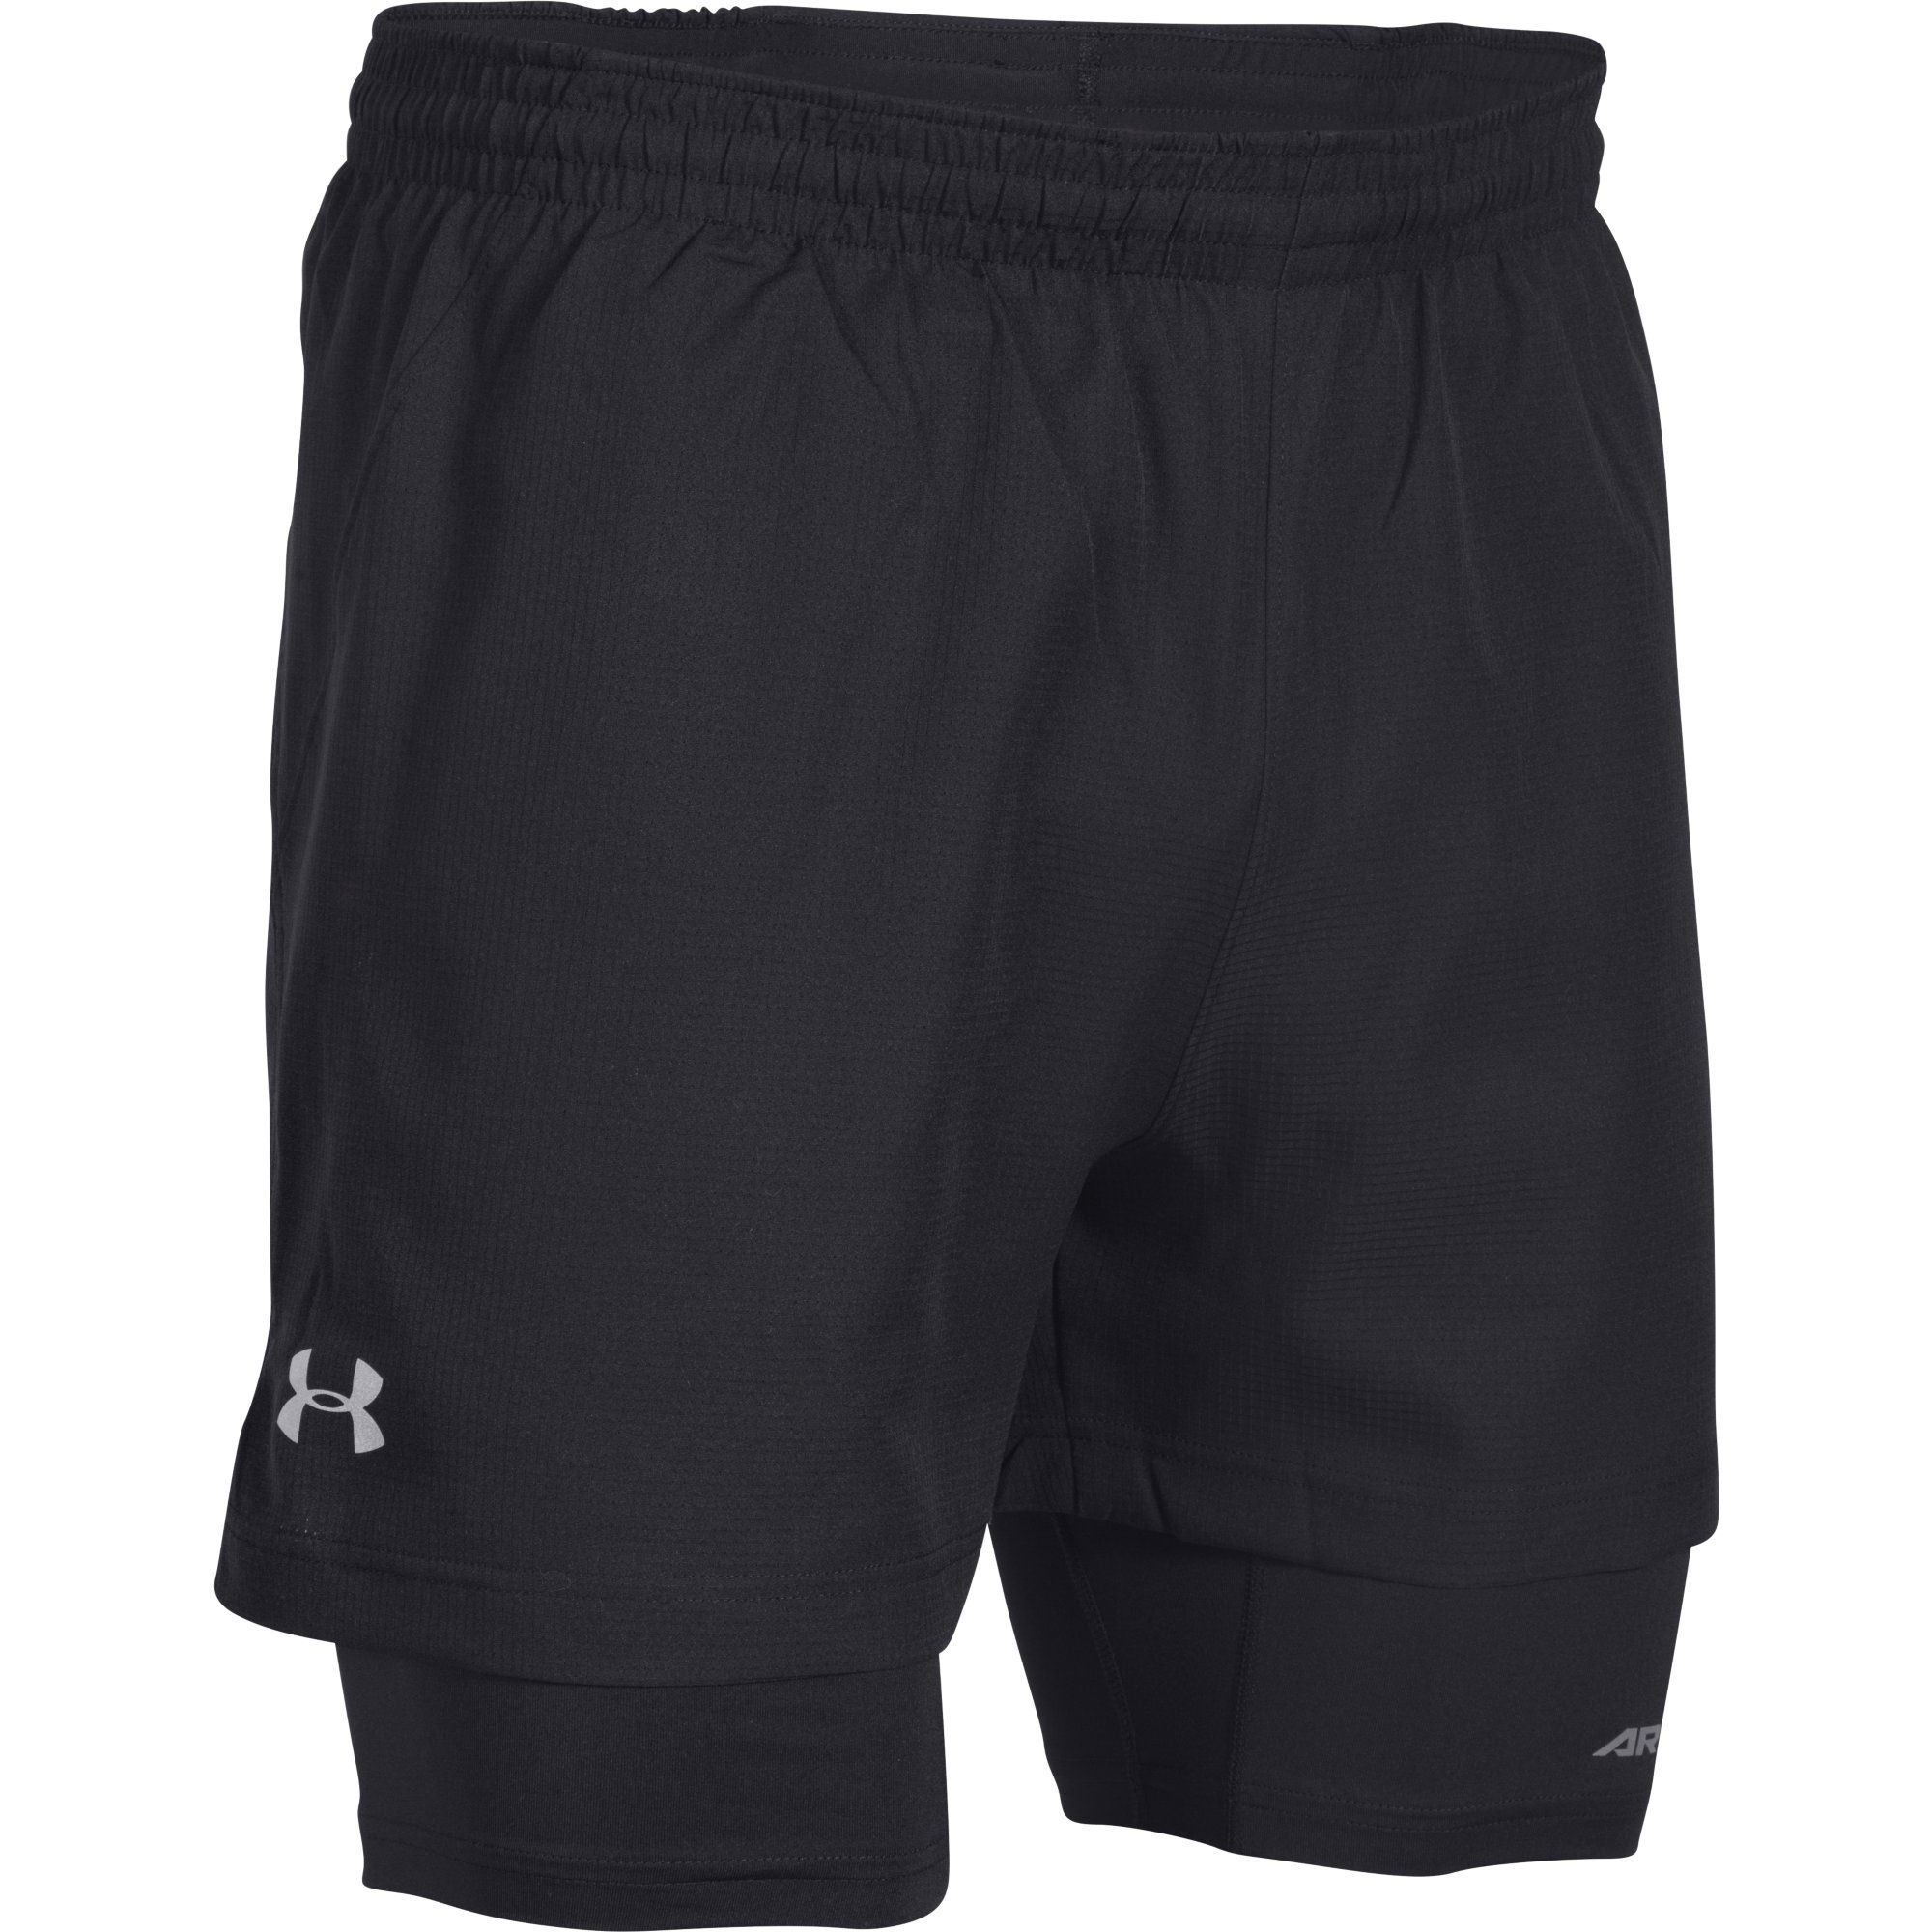 Under armour Transport 2-in-1 shorts -  £45.00